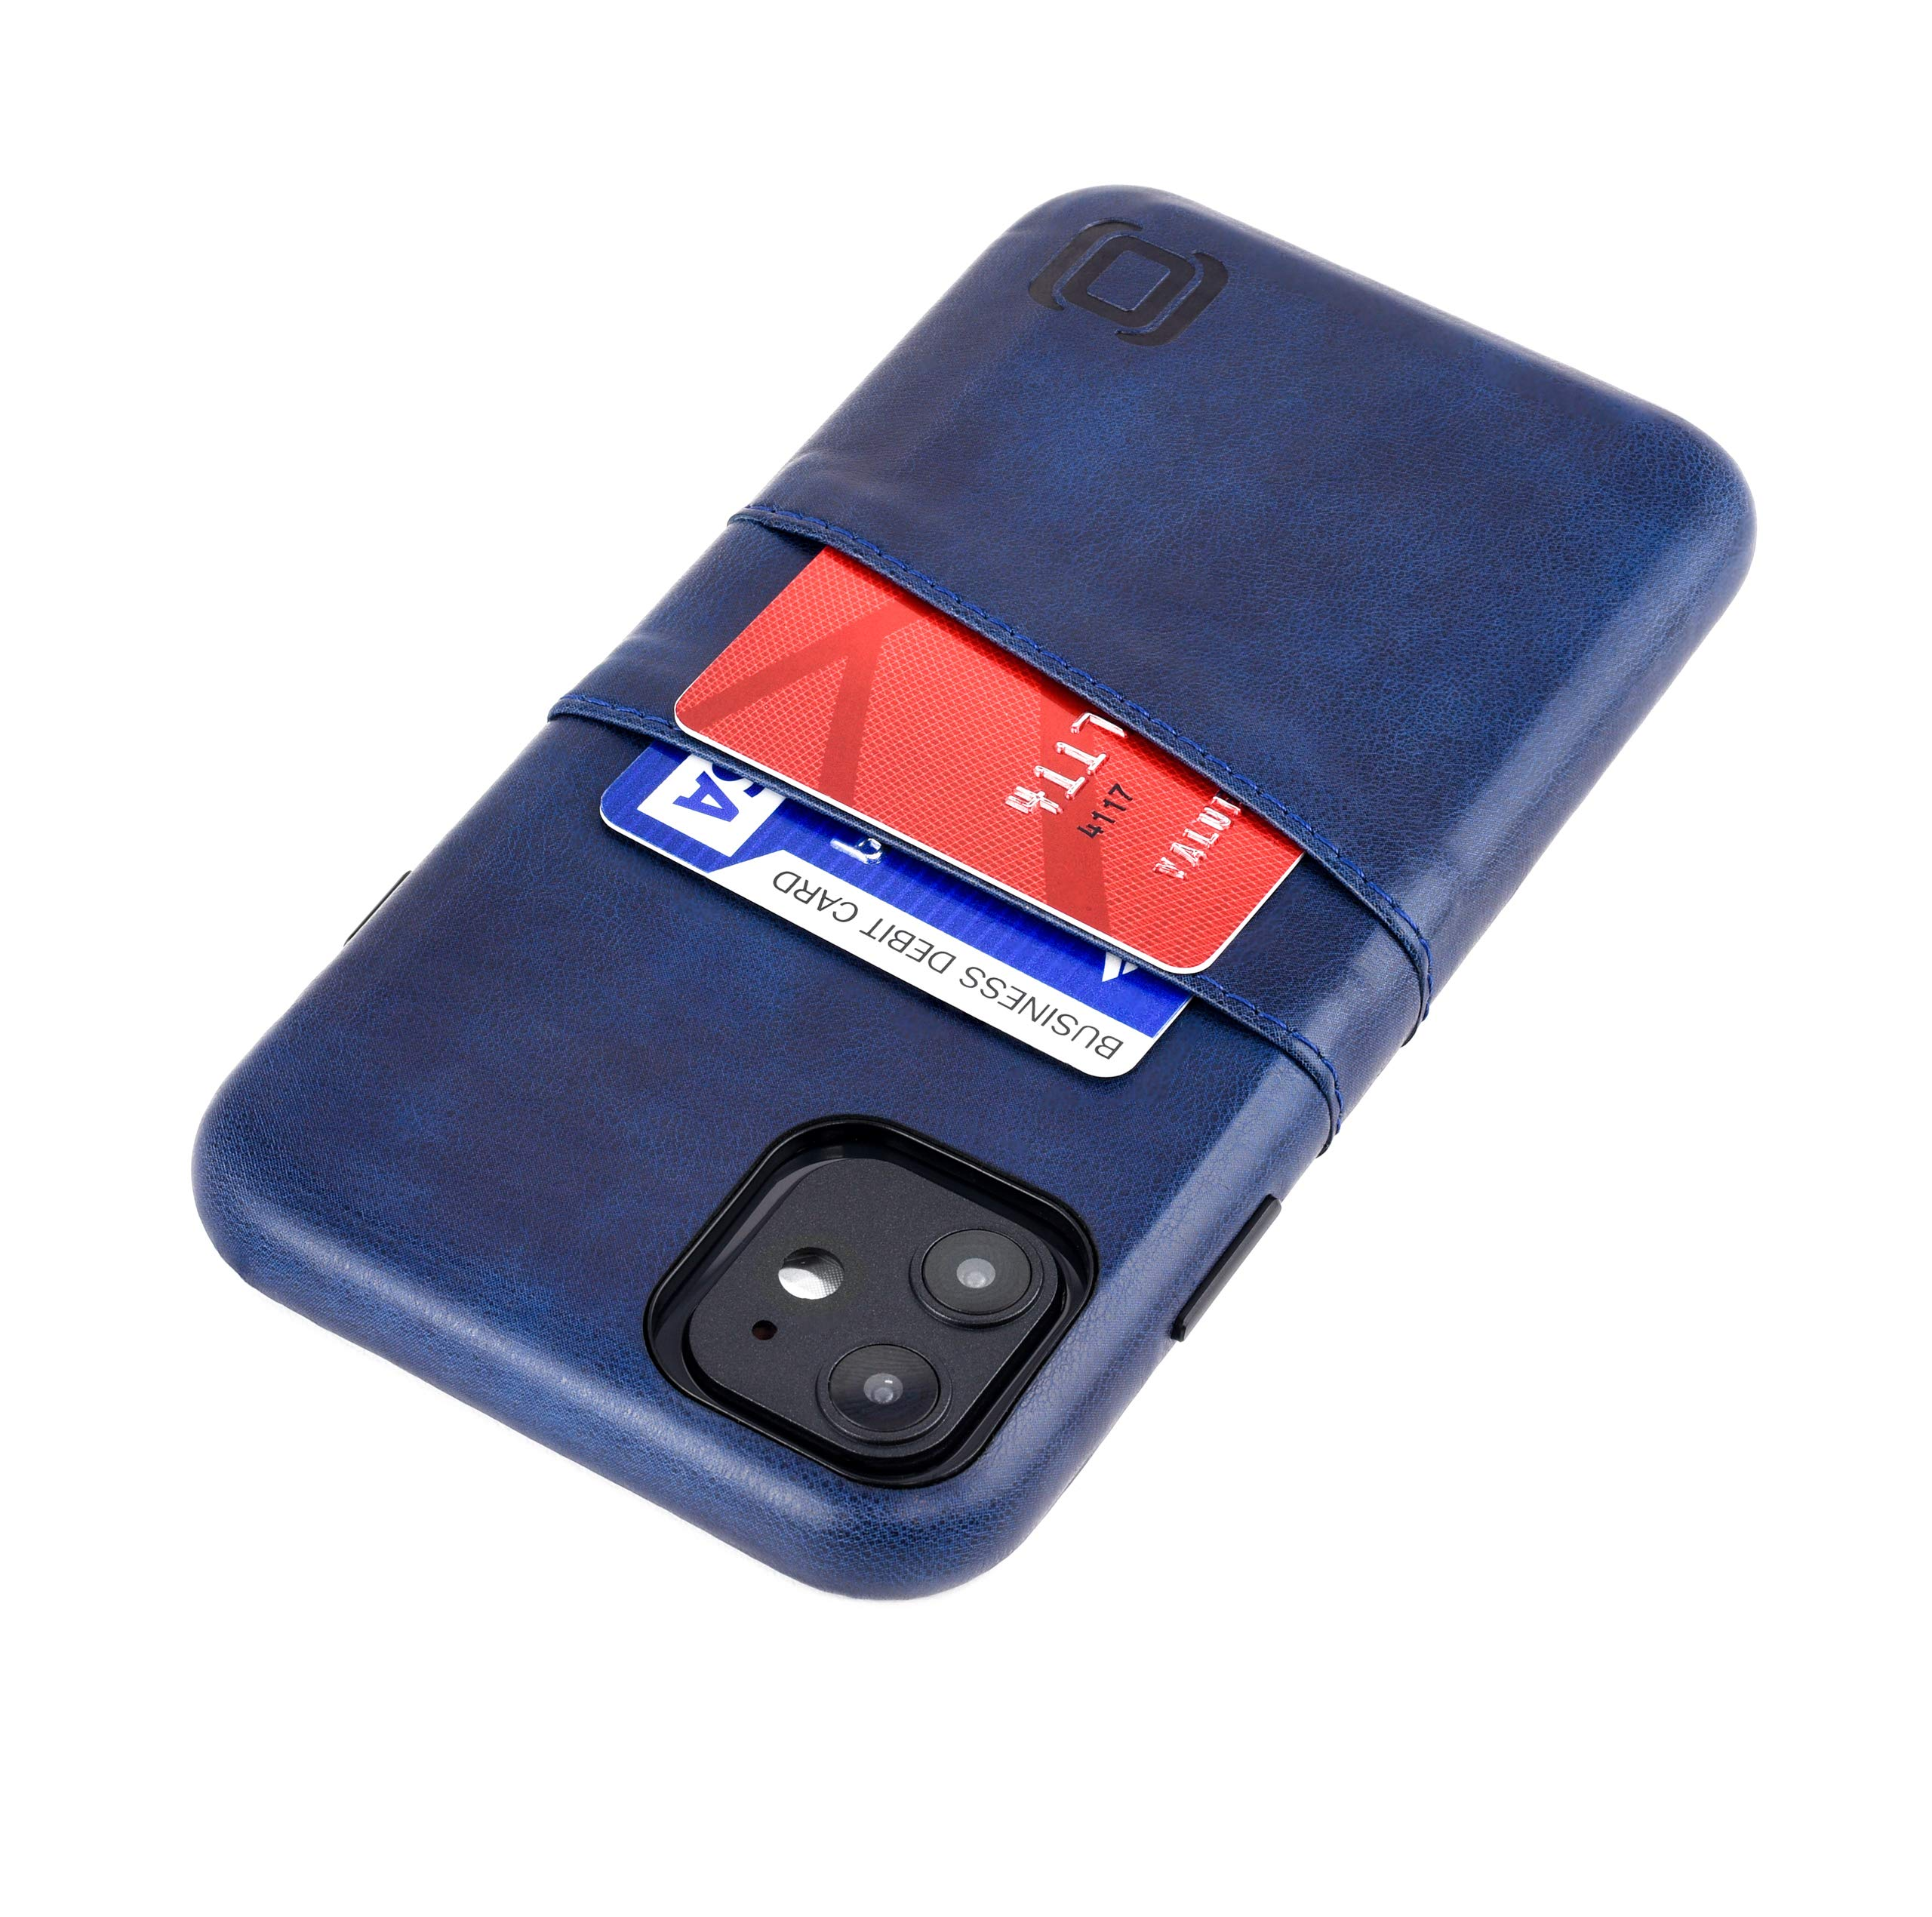 """Dockem iPhone 11 Wallet Case: Built-in Metal Plate for Magnetic Mounting & 2 Credit Card Holders (6.1"""" Exec M2, Synthetic Leather, Navy Blue)"""